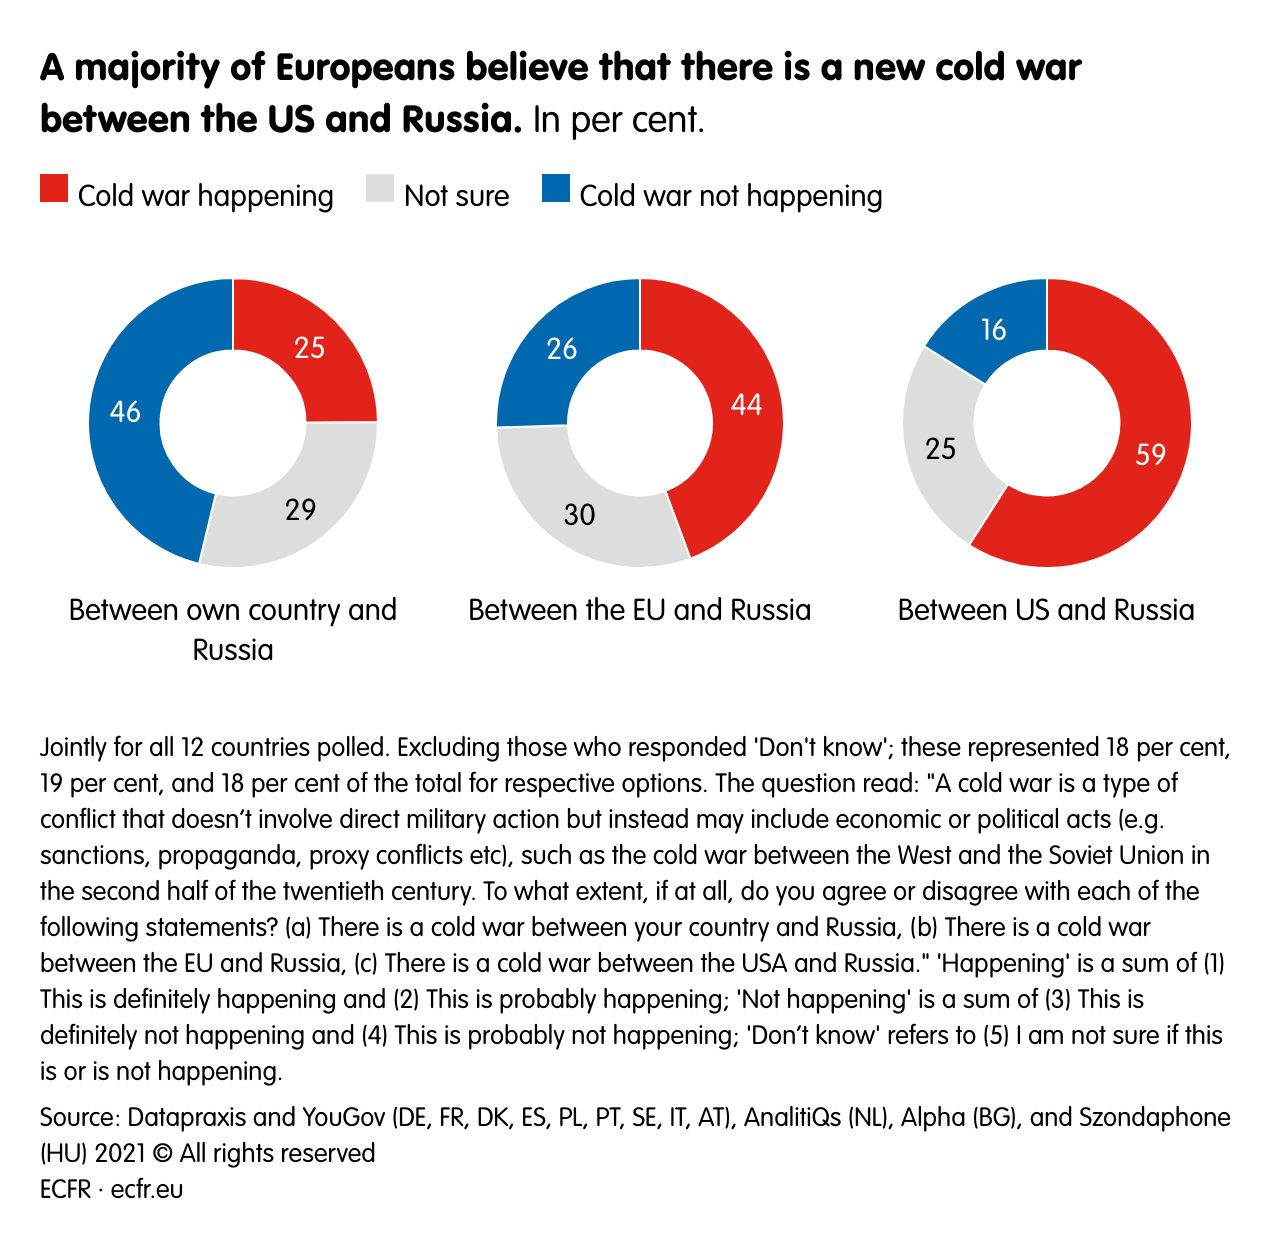 A majority of Europeans believe that there is a new cold war between the US and Russia.